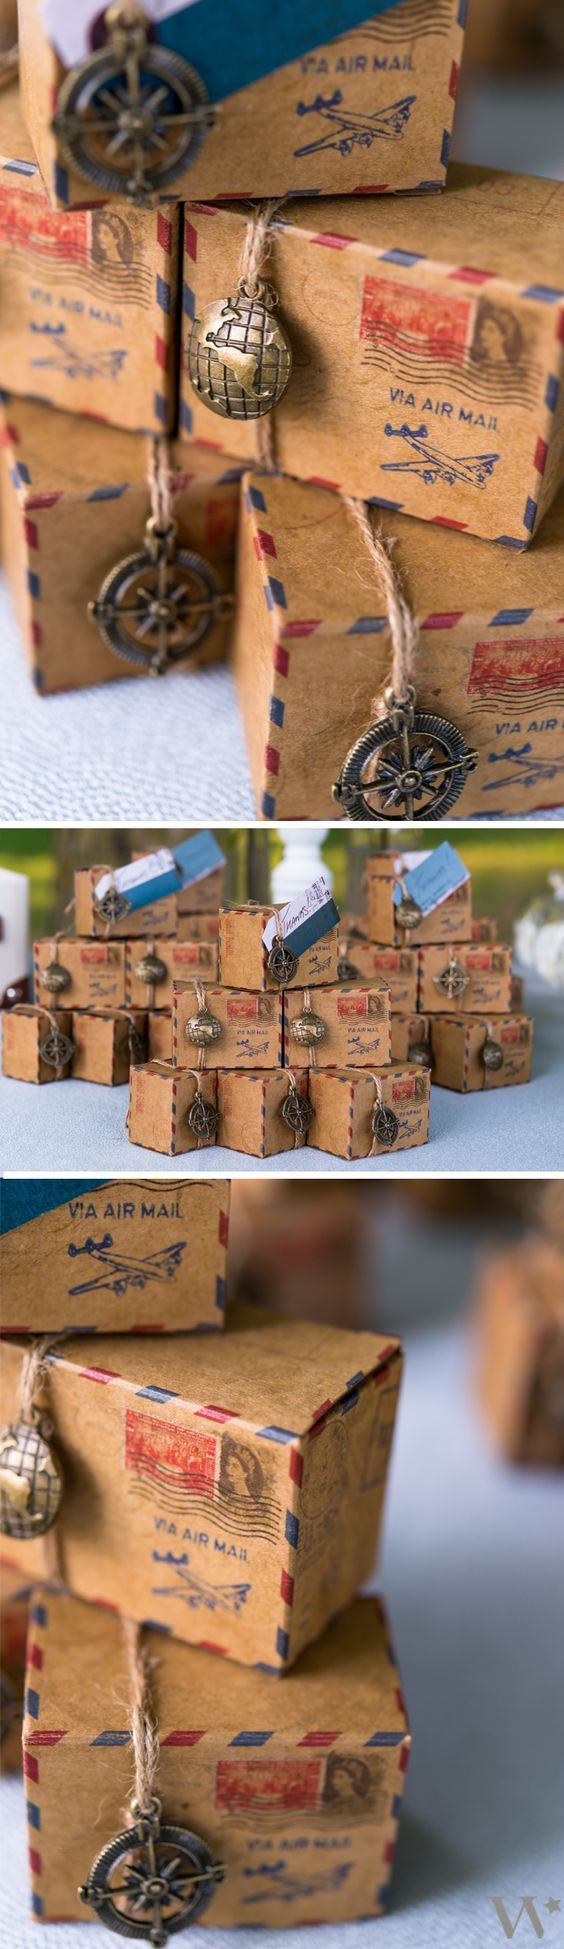 Vintage Inspired Airmail Favor Box Kits / http://www.deerpearlflowers.com/travel-themed-wedding-ideas-youll-want-to-steal/2/